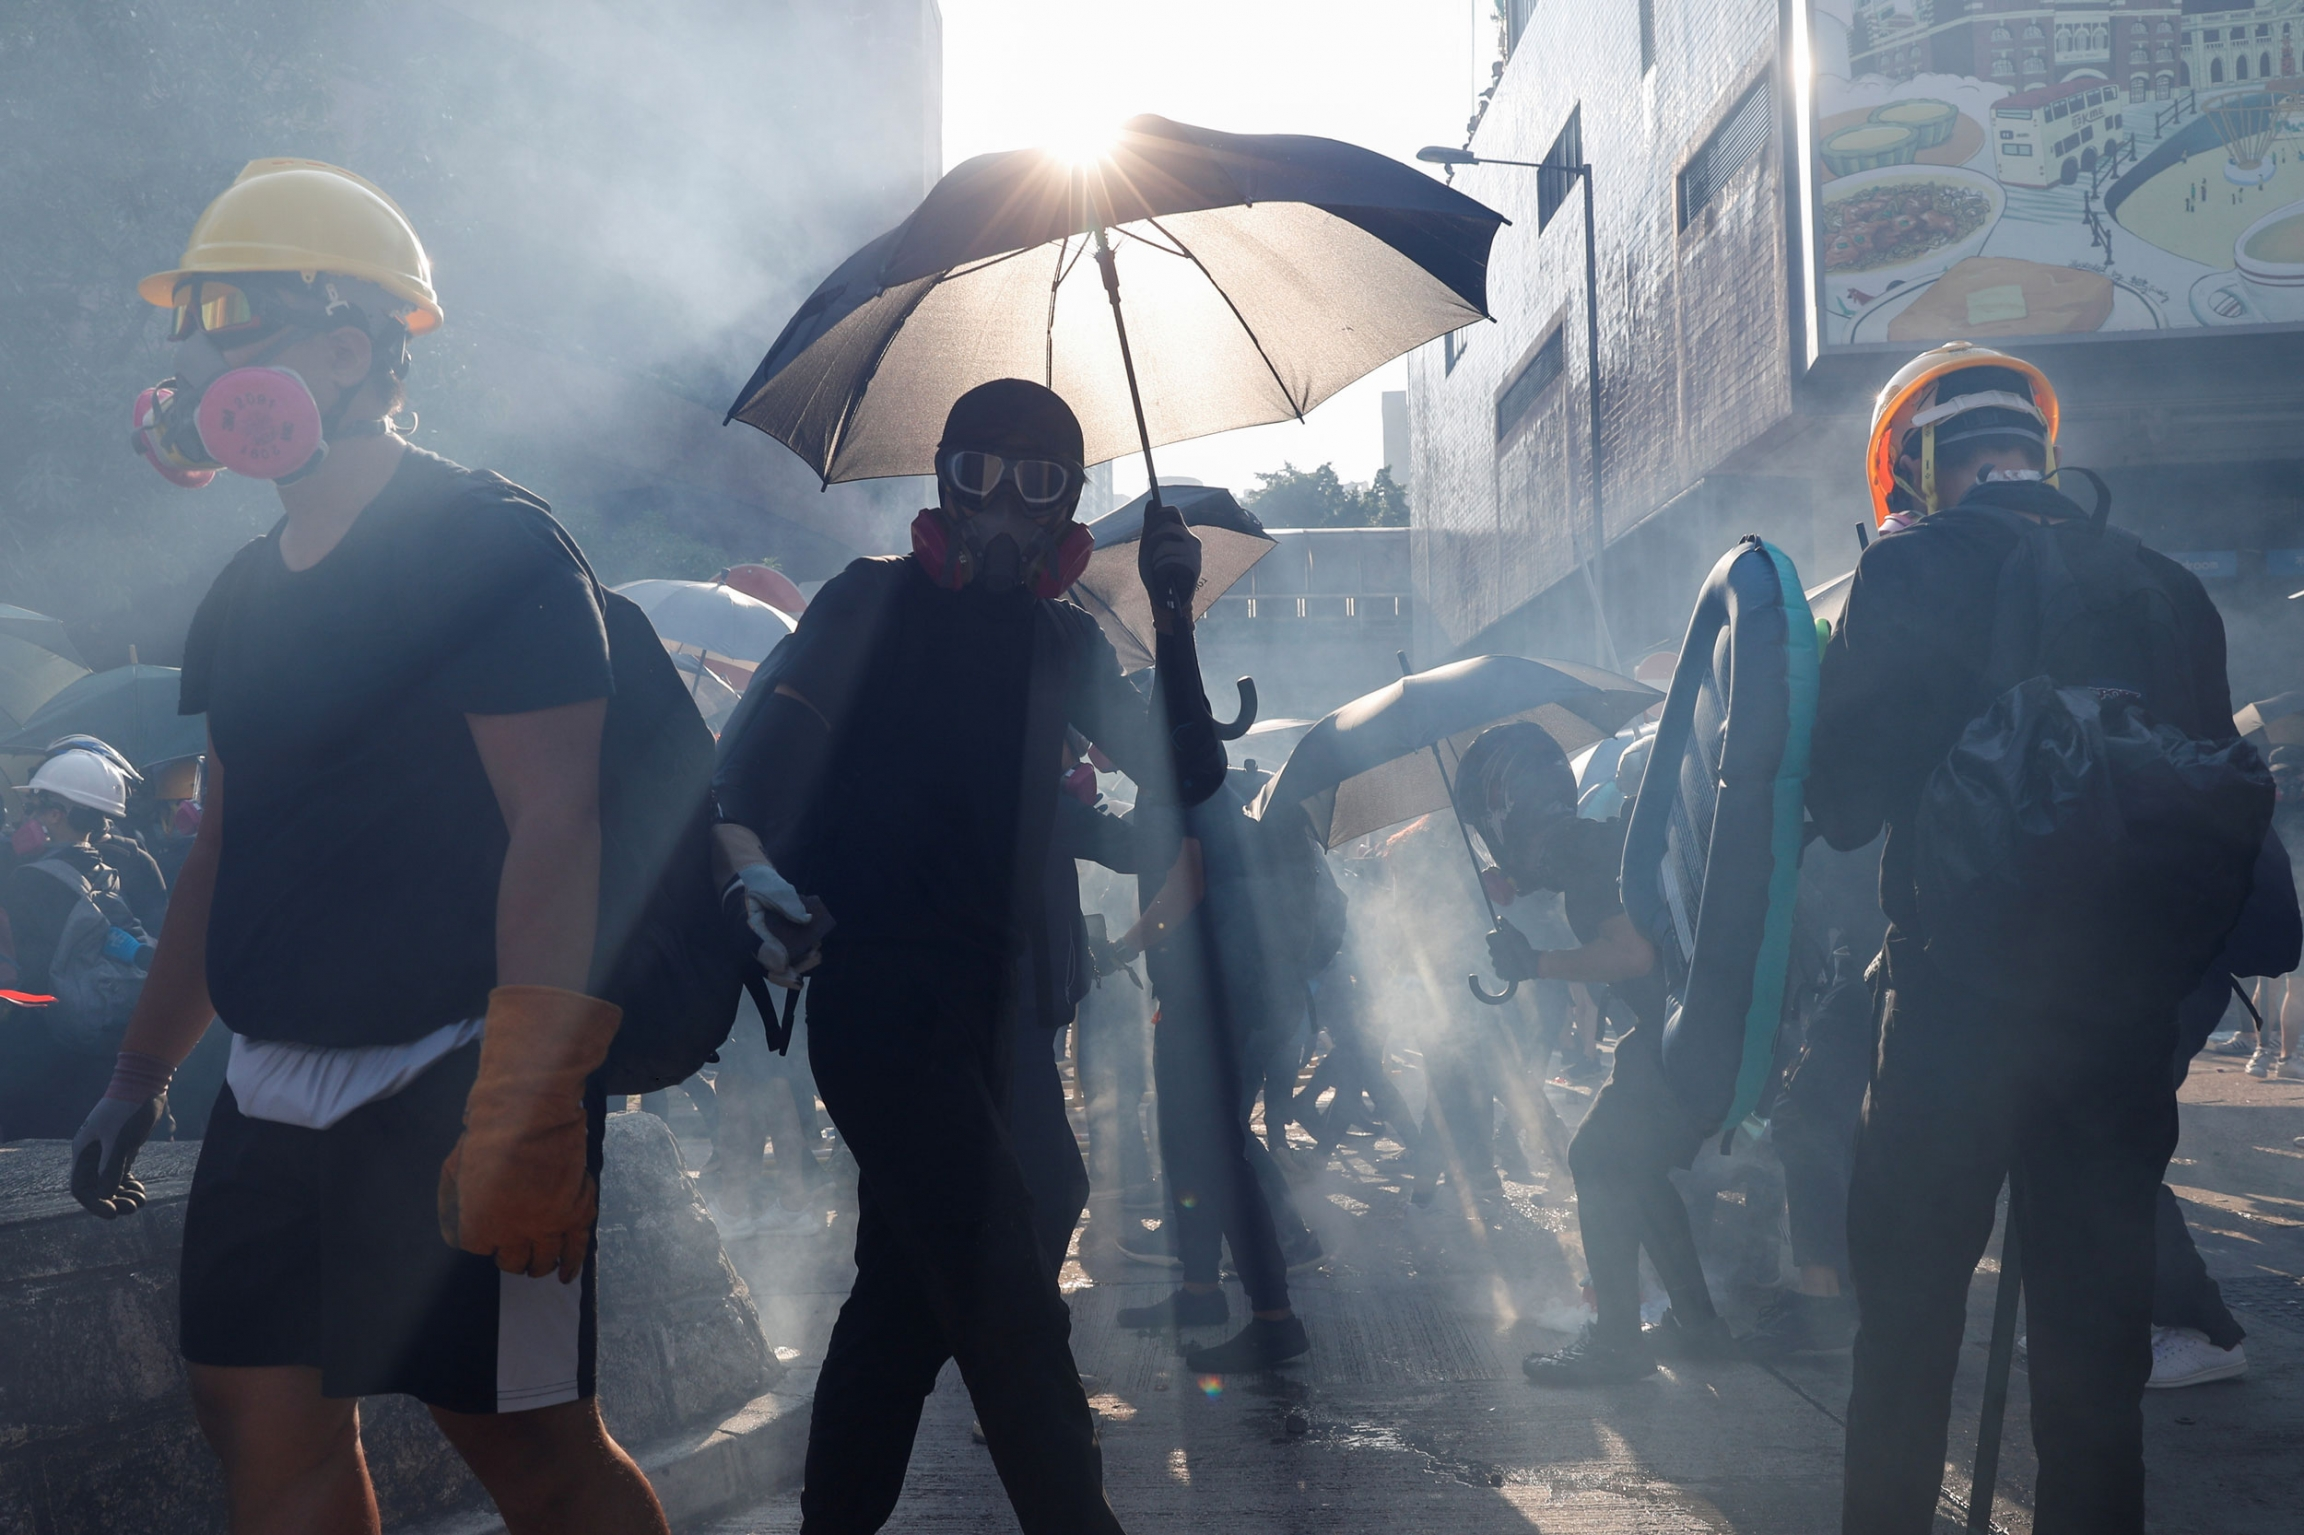 Several protesters are shown wearing gas masks and one holding an umbrella with the sun glaring above it.